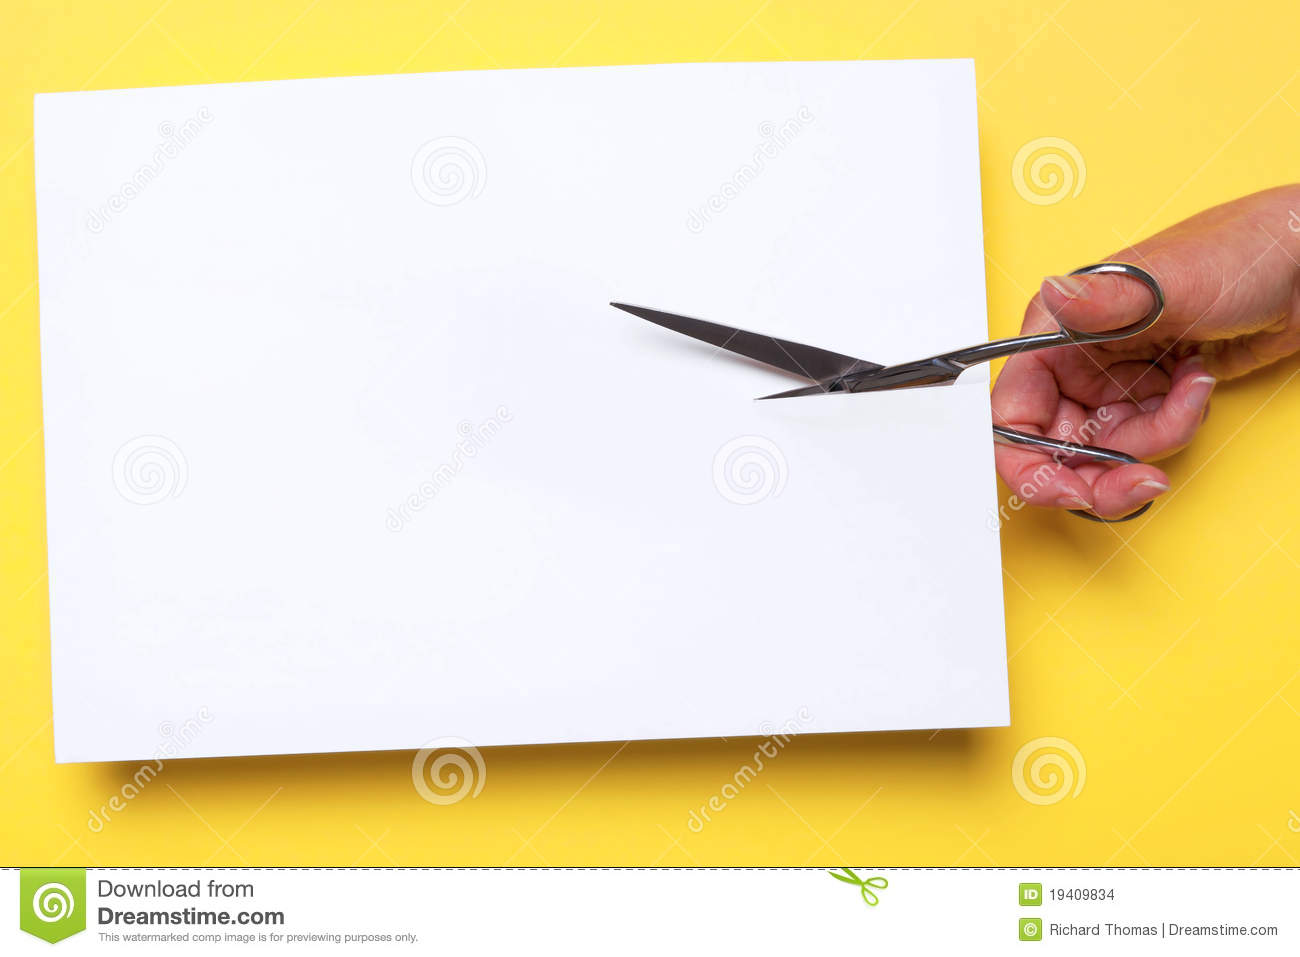 Cutting A Piece Of Paper : Cutting a piece of paper clipart suggest